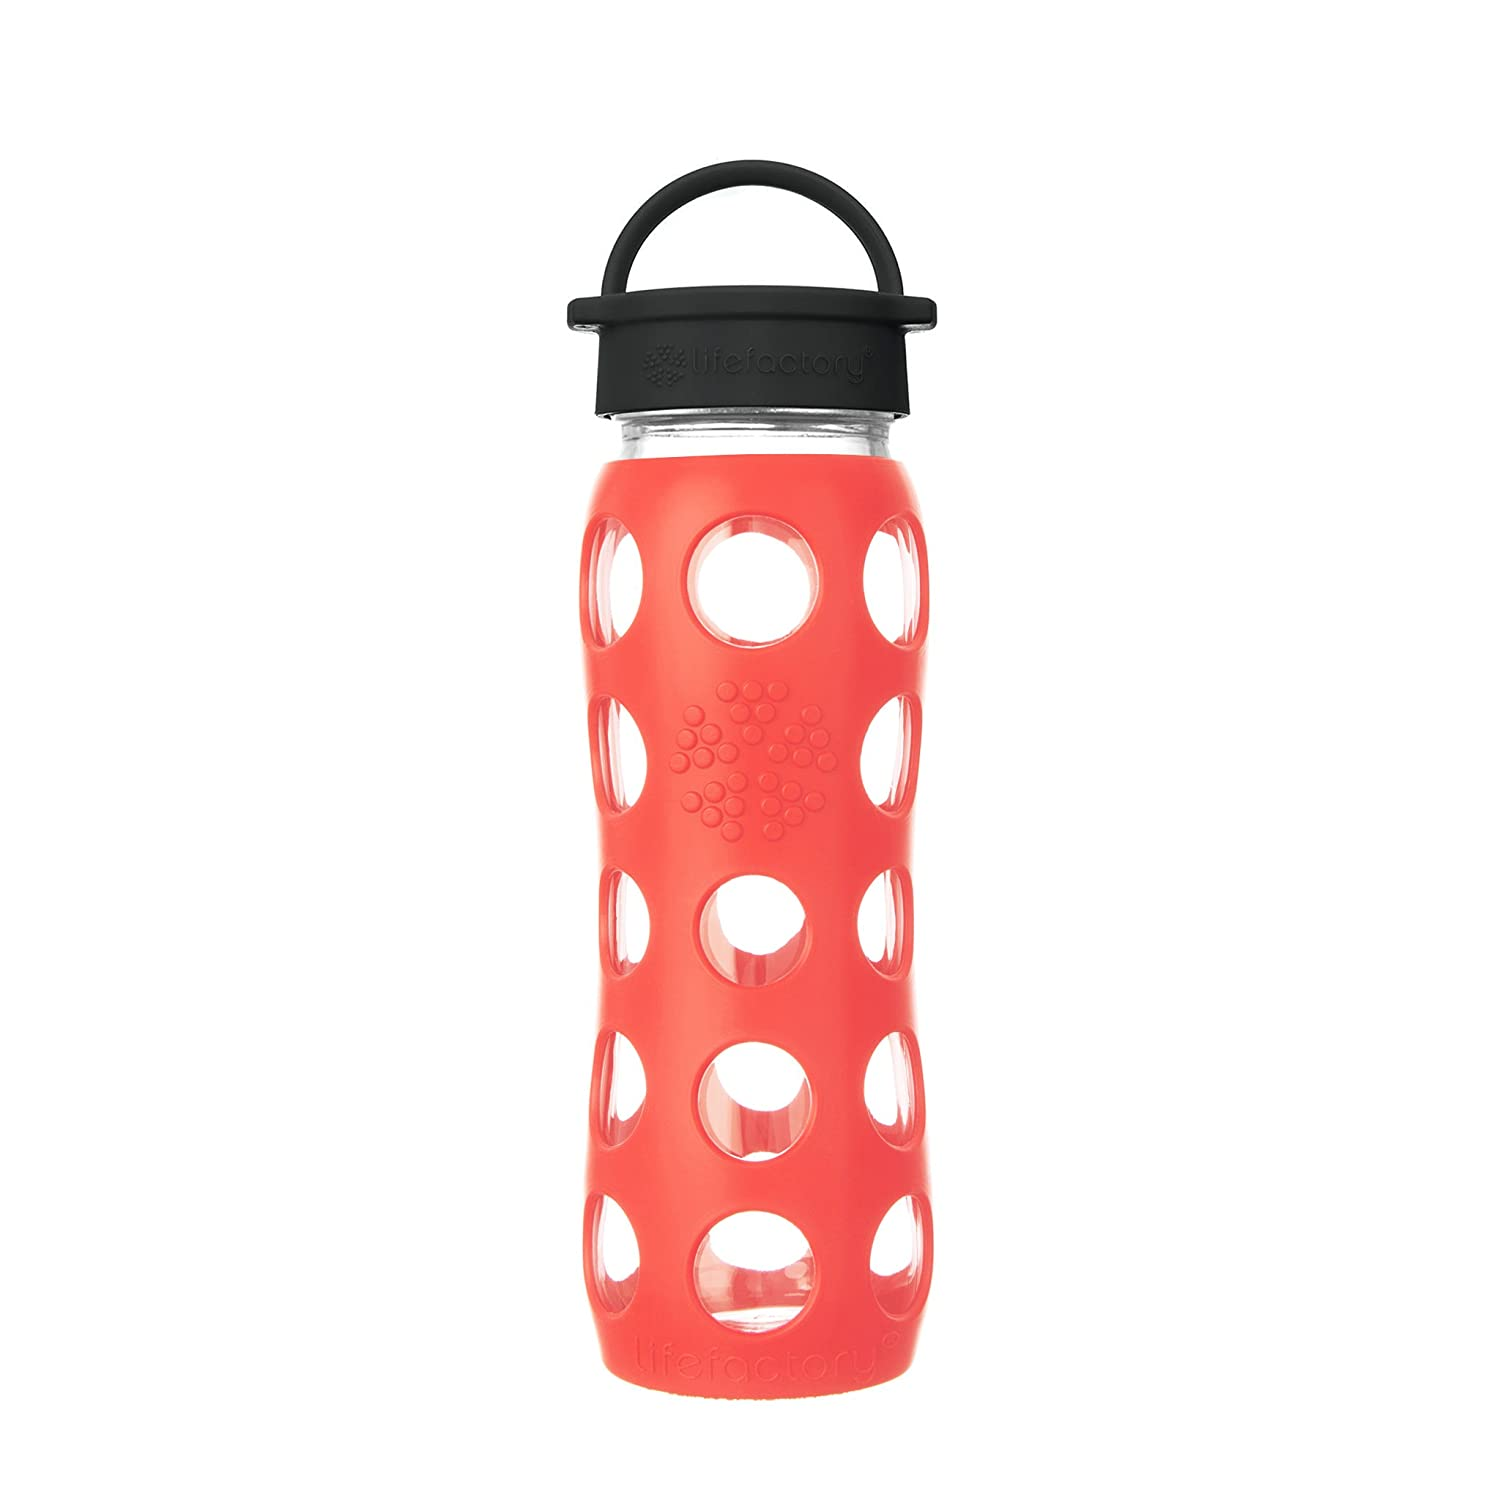 Lifefactory 22-Ounce BPA-Free Glass Water Bottle with Classic Cap and Silicone Sleeve Onyx LF230214C4